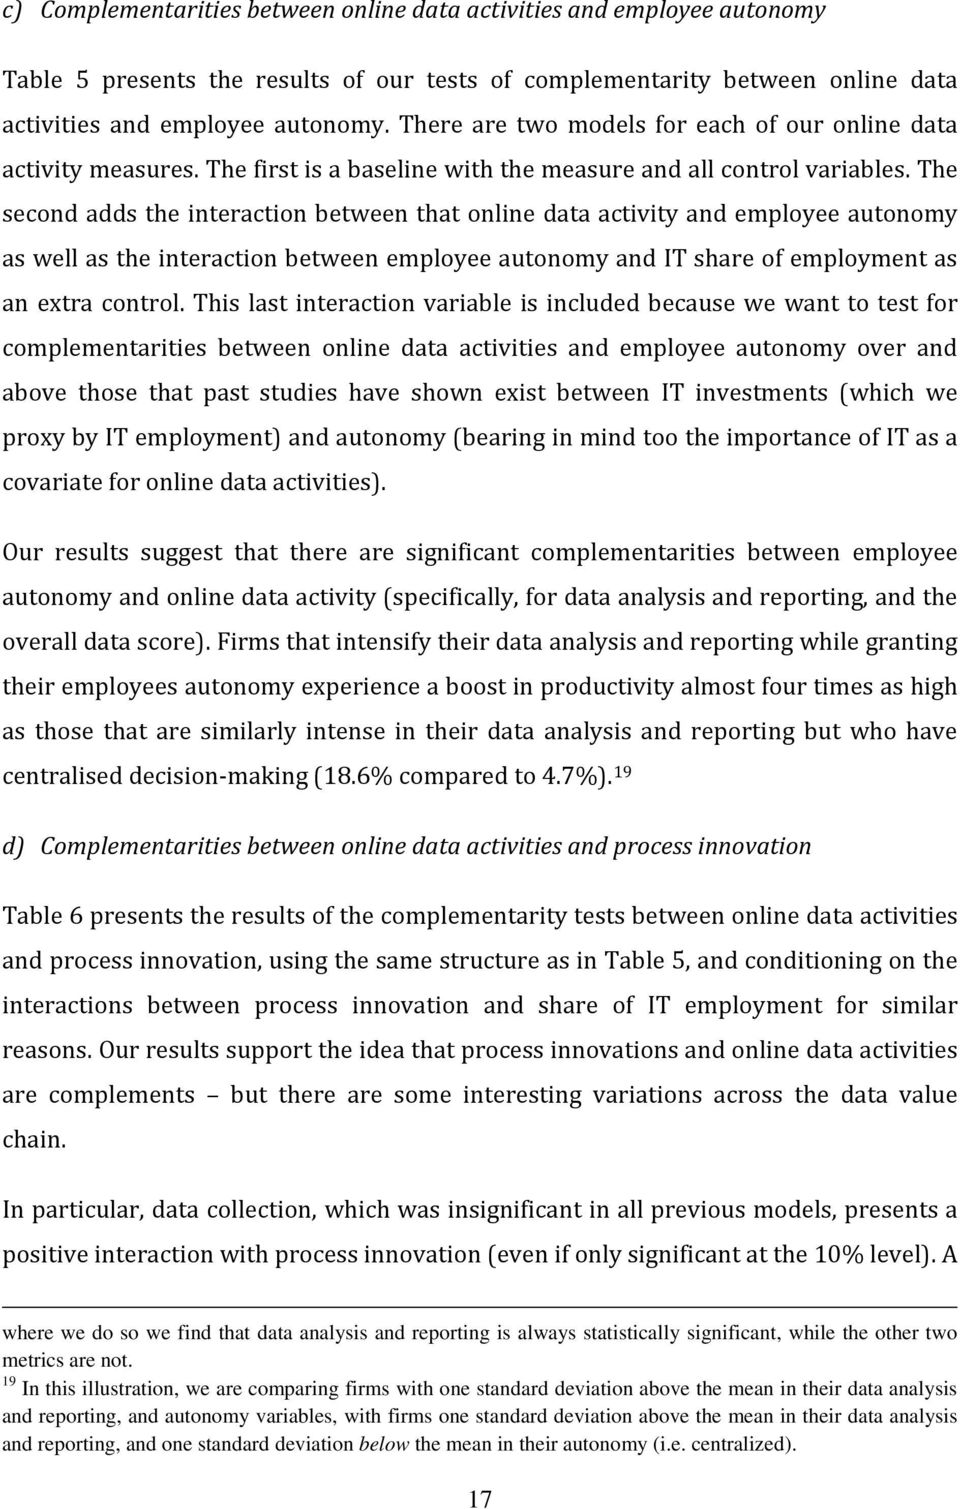 The second adds the interaction between that online data activity and employee autonomy as well as the interaction between employee autonomy and IT share of employment as an extra control.